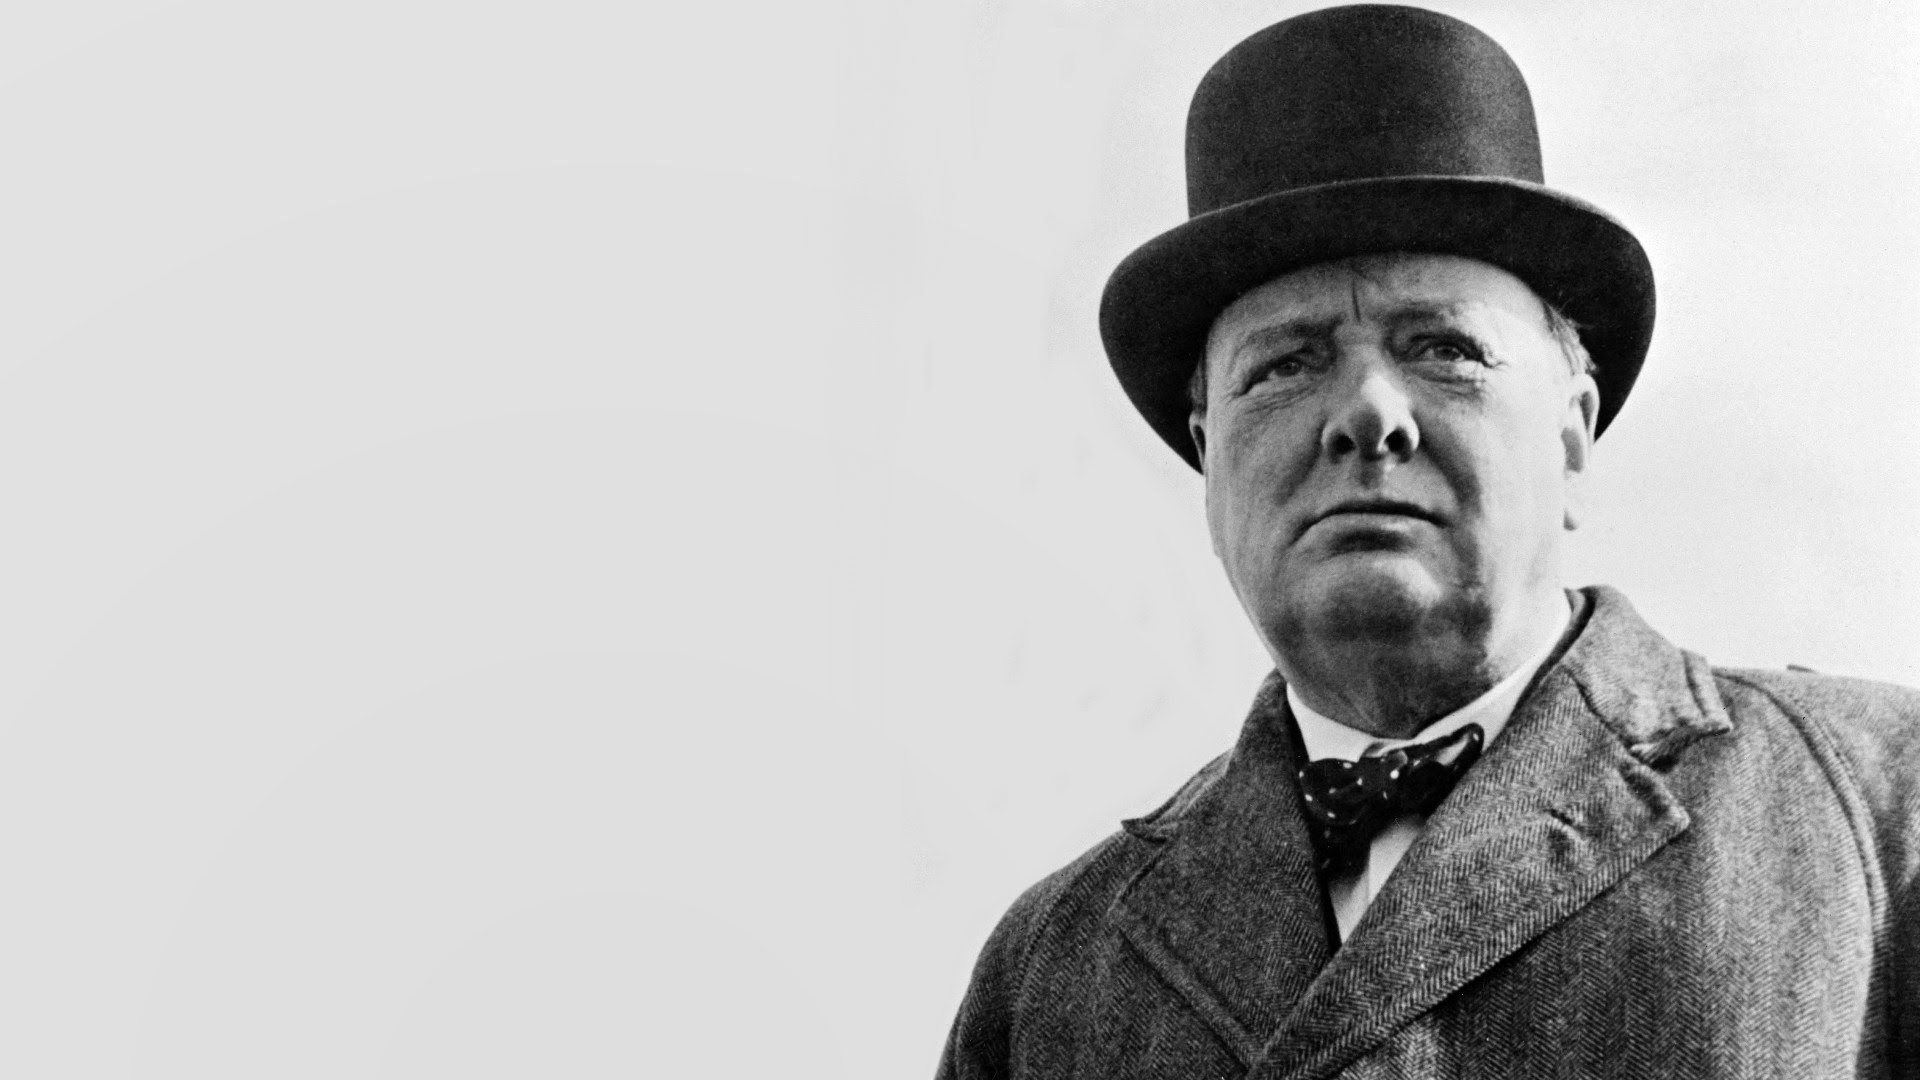 Winson Churchill - Bible quotes